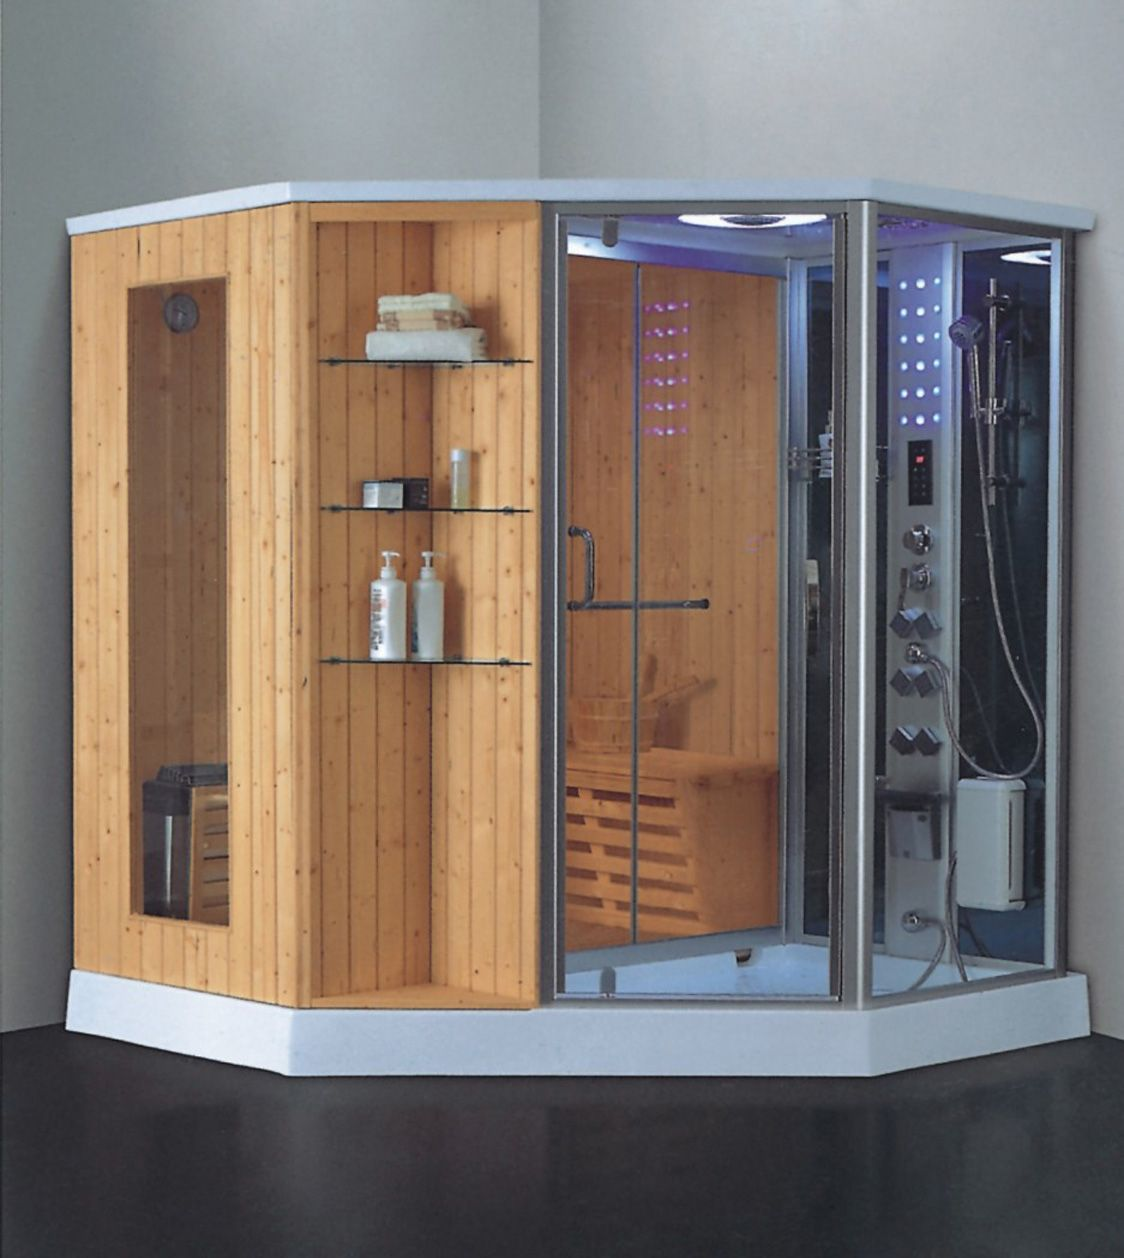 Image Result For Steam Shower Sauna Combo Bathroom